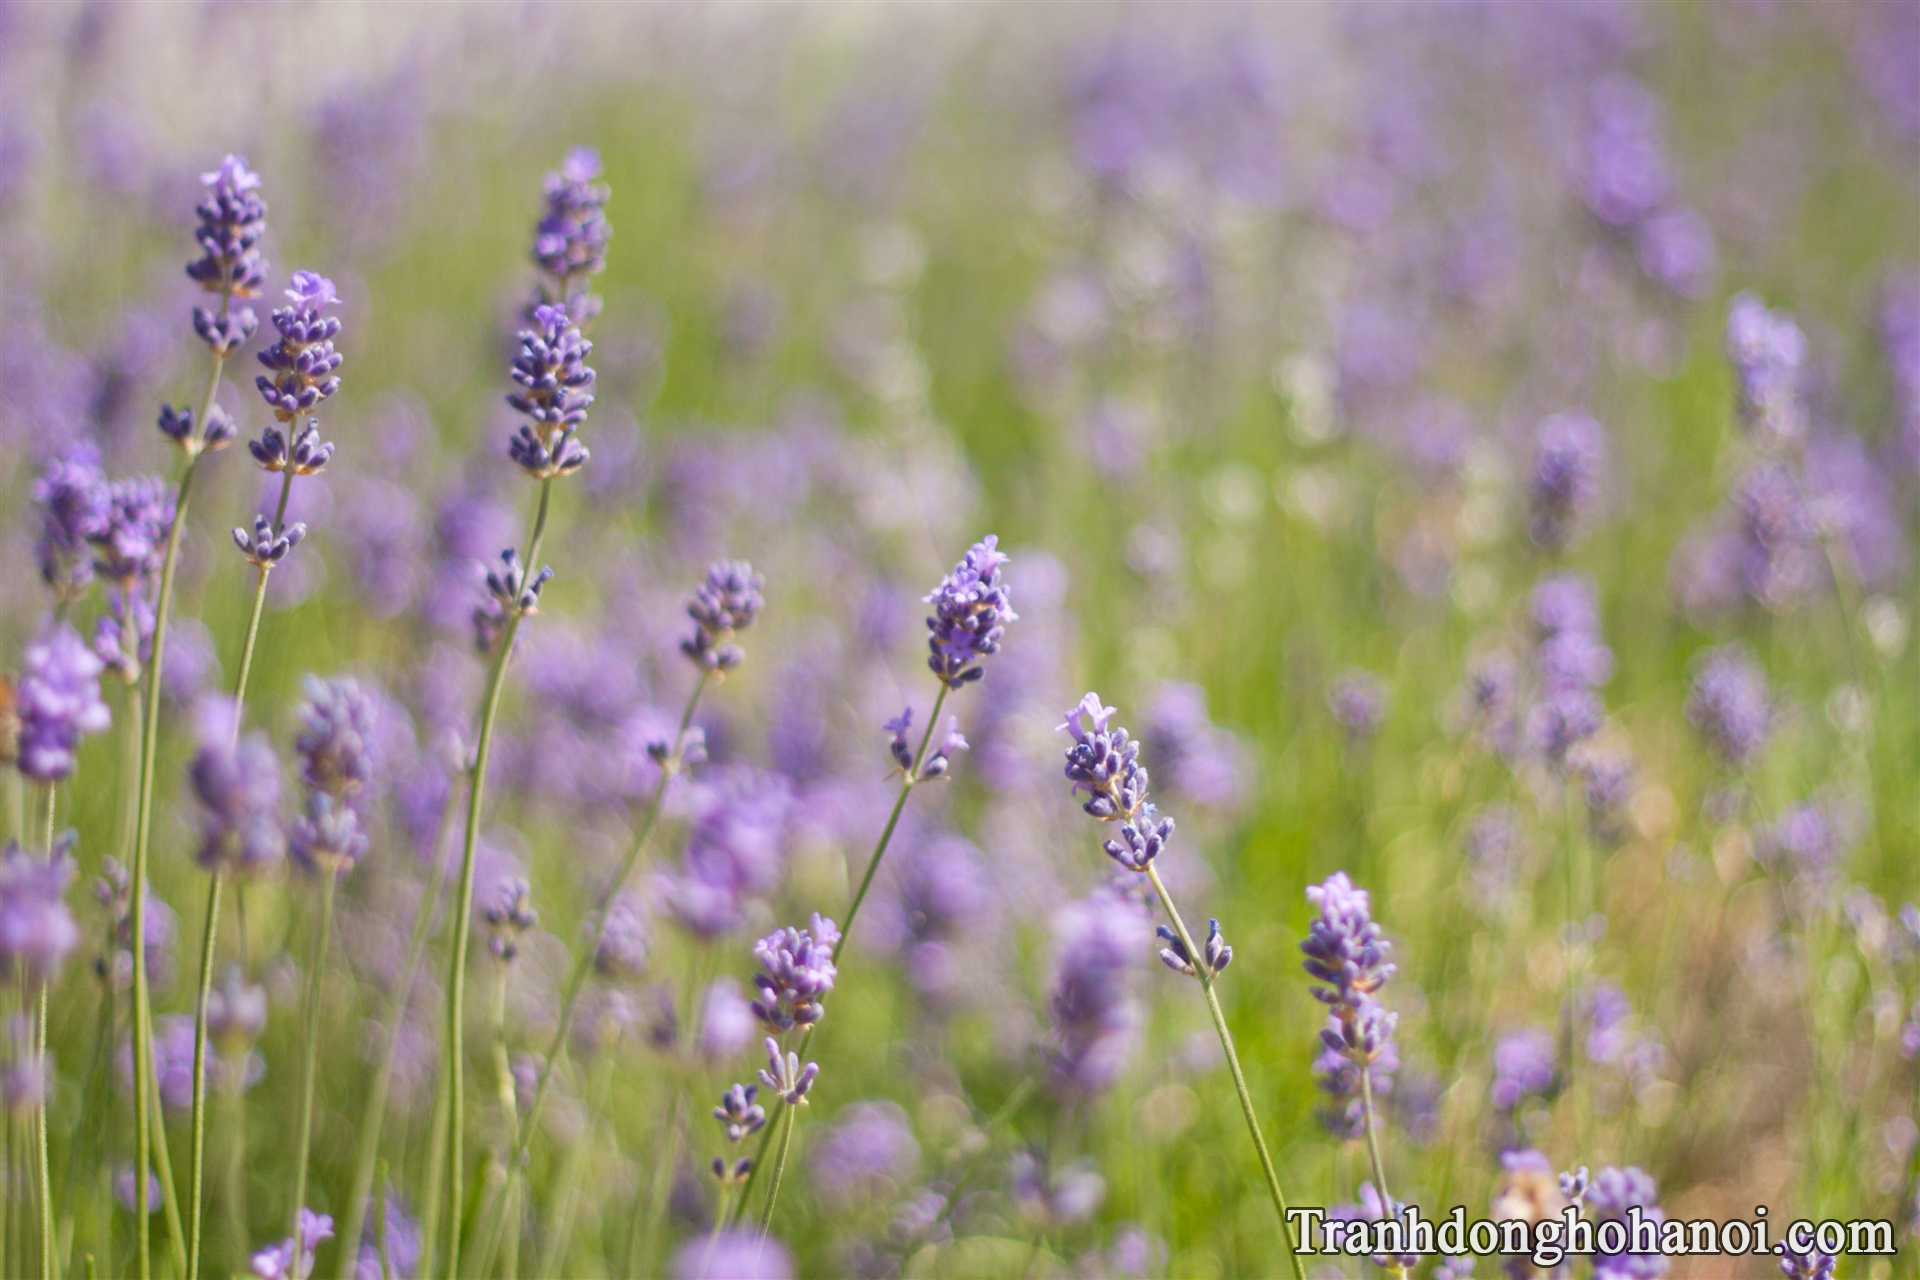 Free stock photos of lavender AmiA